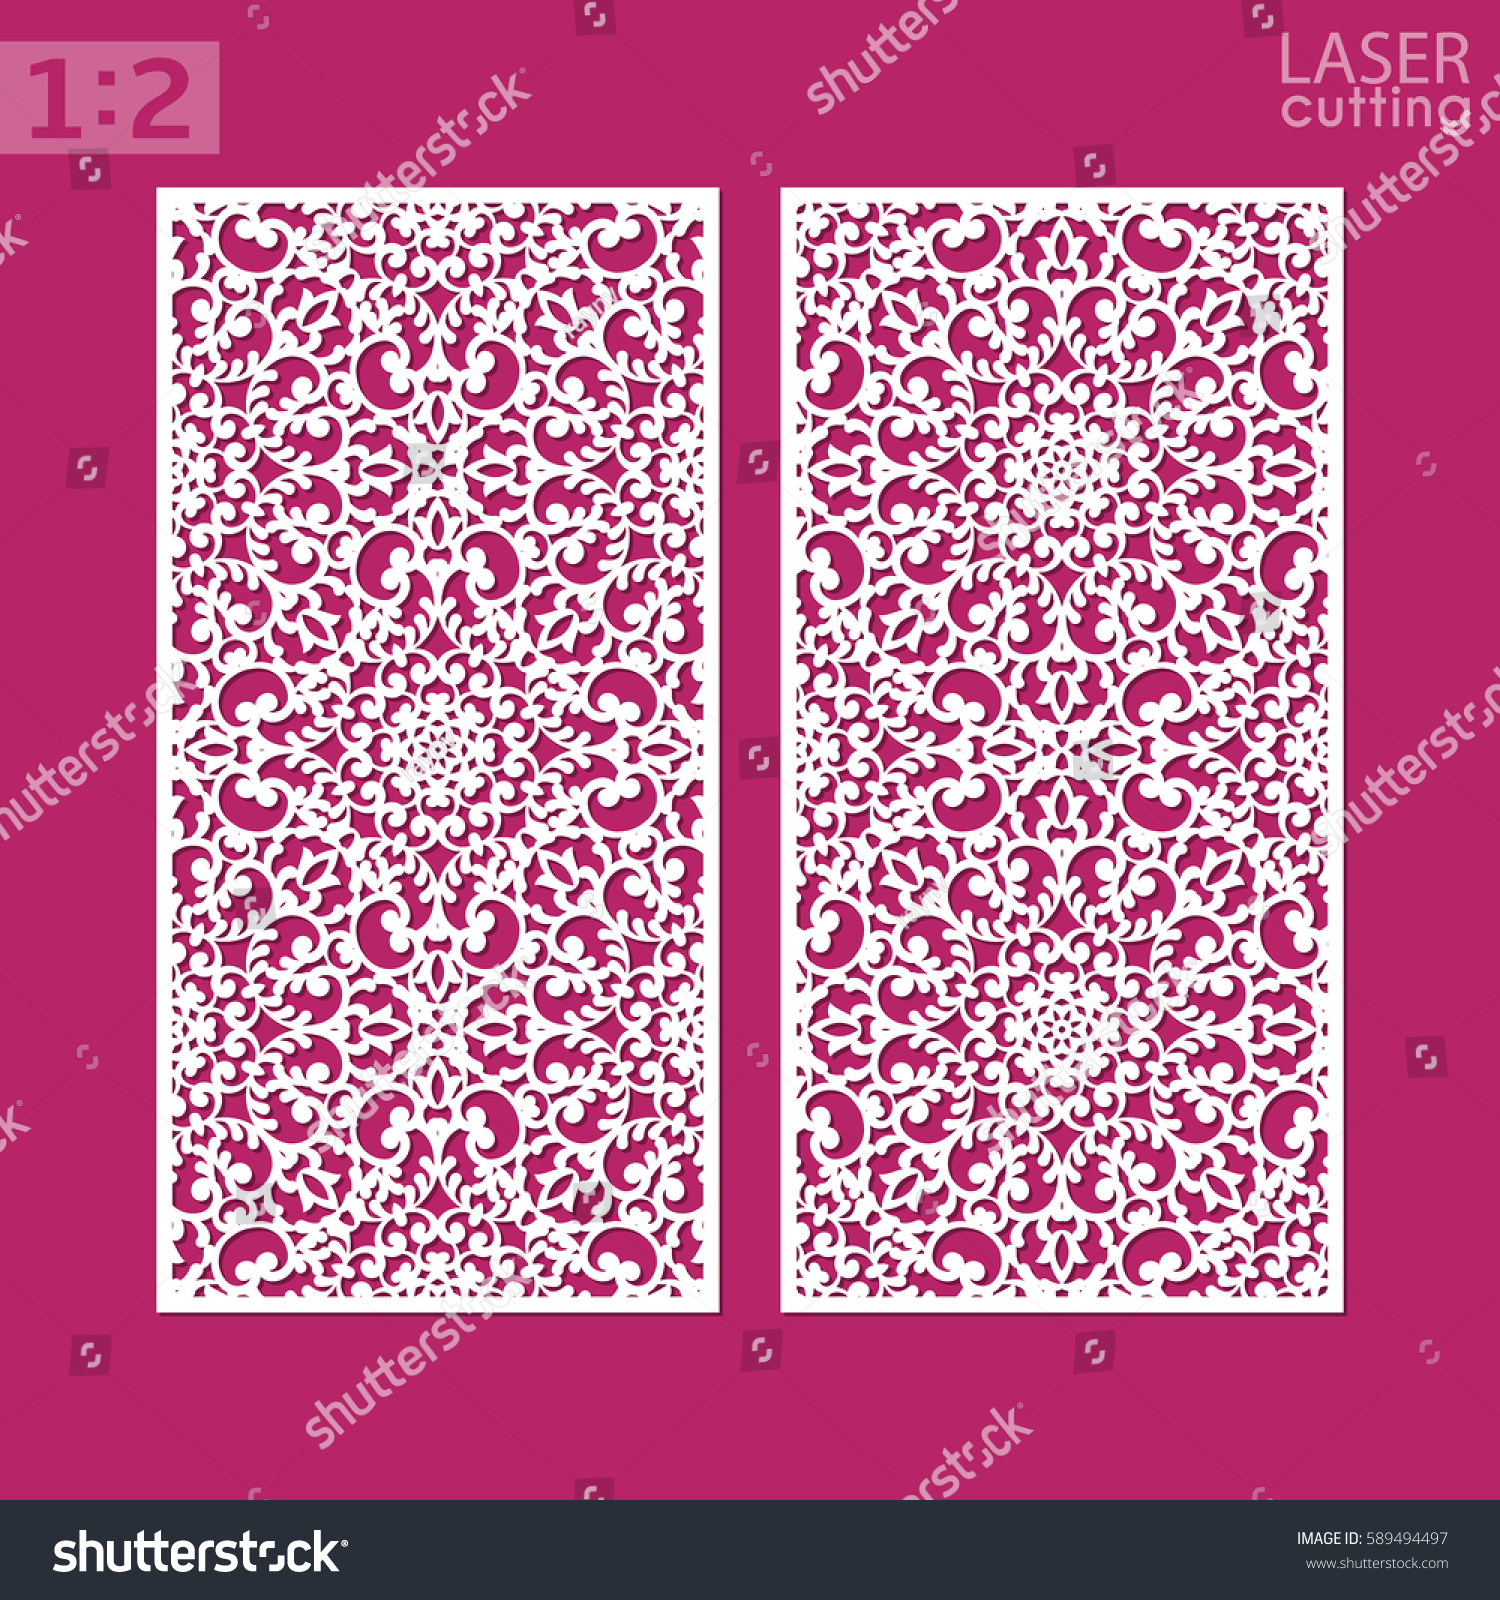 free laser cutter templates - online image photo editor shutterstock editor